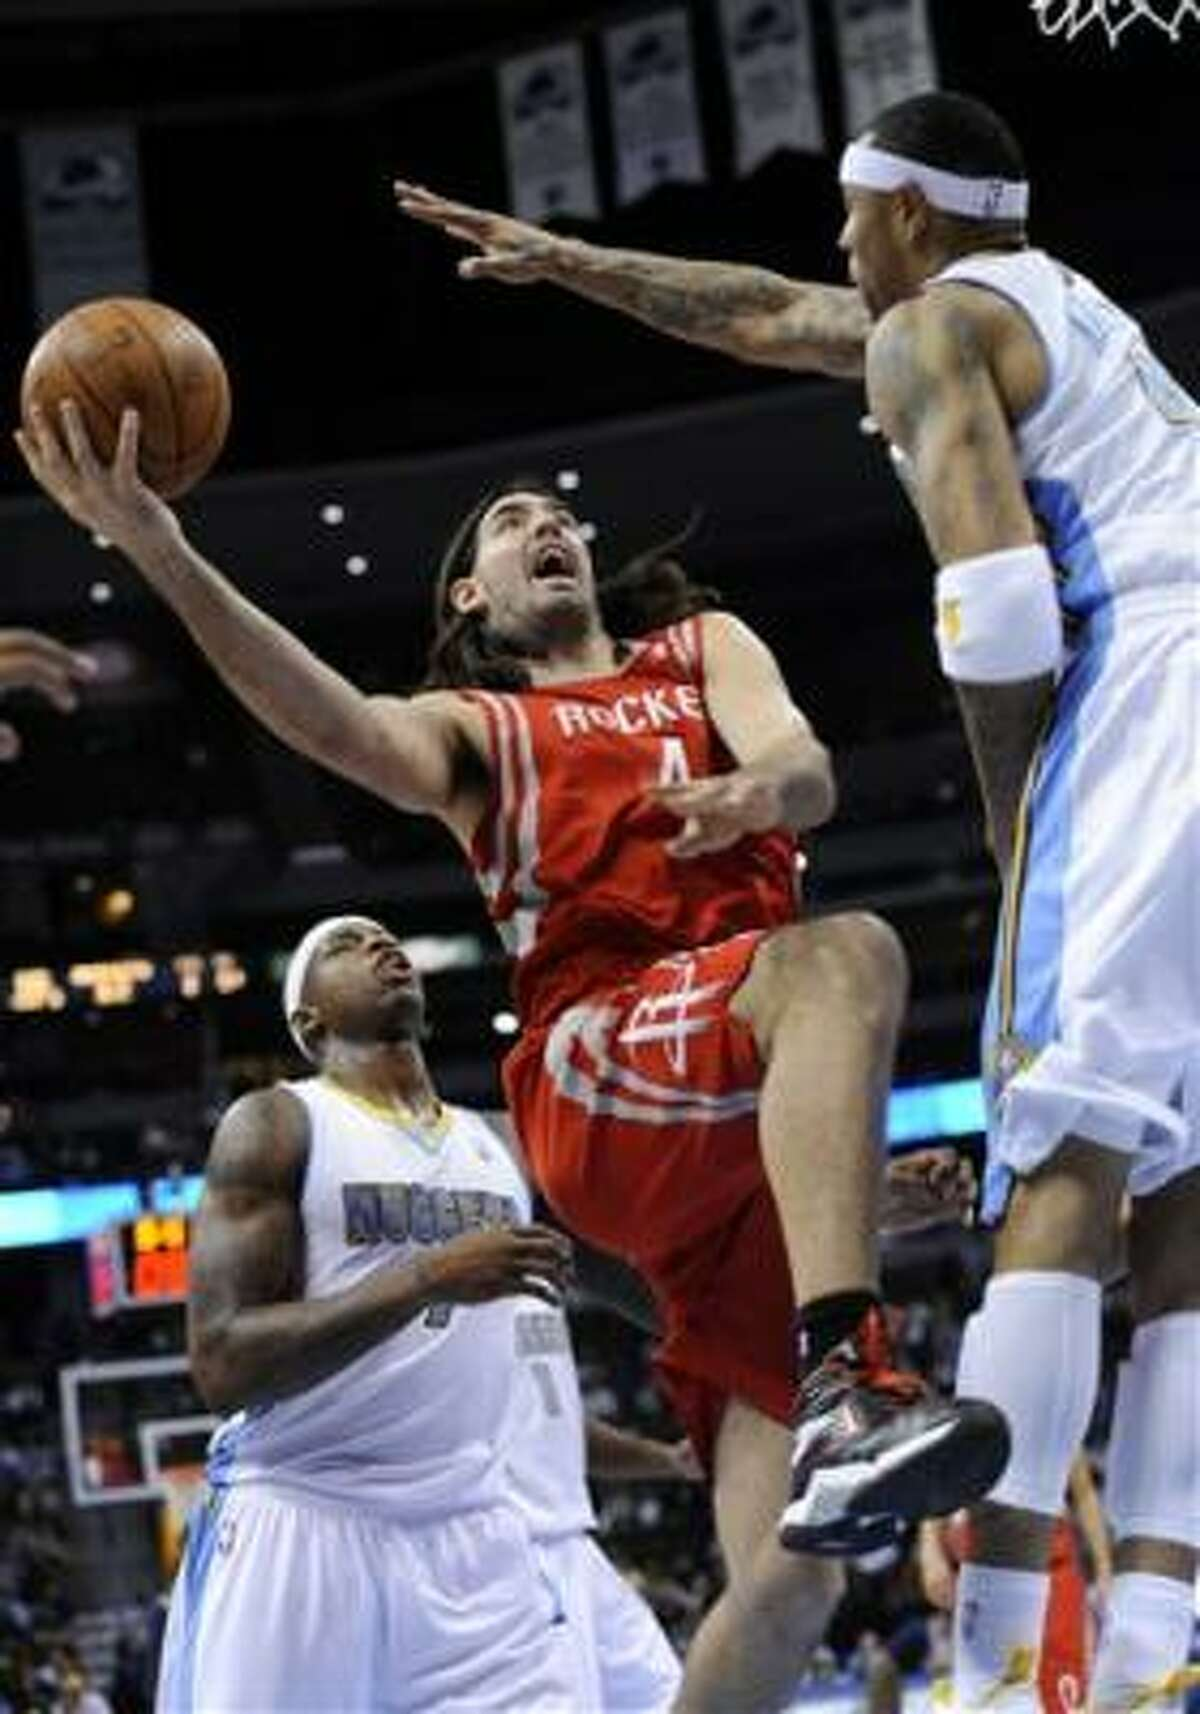 Nuggets forward Kenyon Martin (4) knocks the ball out of the hands of Rockets forward Luis Scola (4).